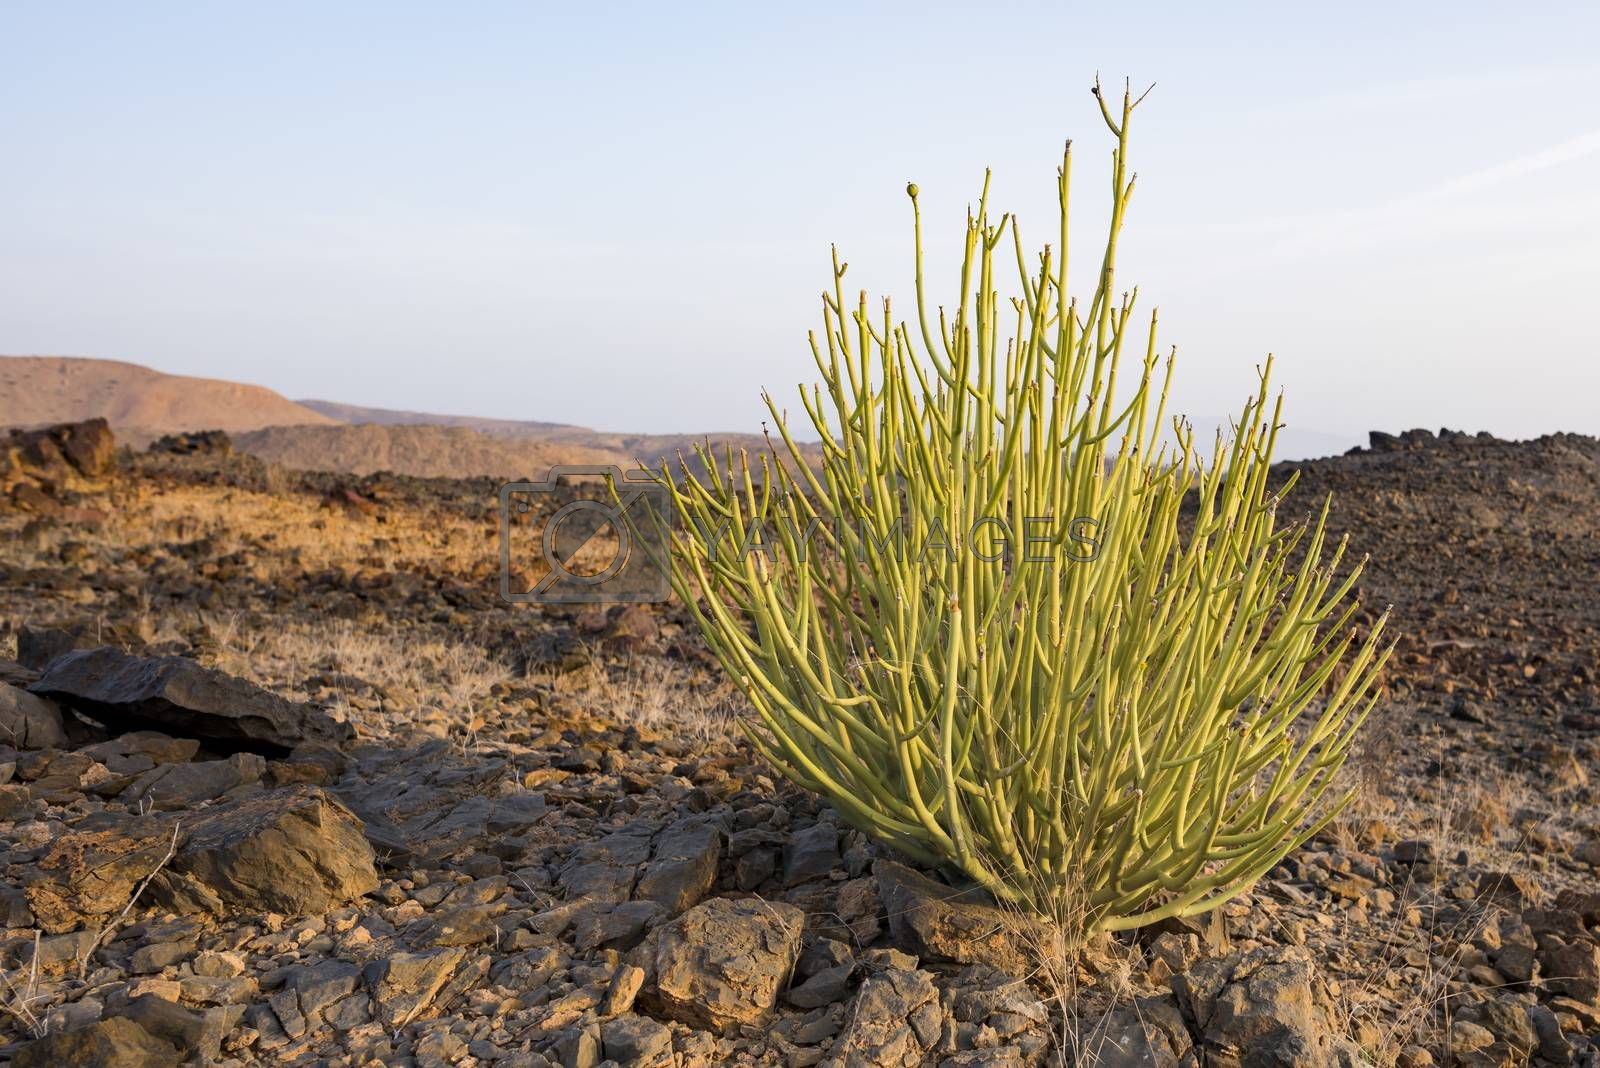 Euphorbia larica (cactus-like in appearance) is one of the commoner plants in Oman (where it is known as isbaq), found from sea-level to 1500m. Like many other Euphorbiaceae, it produces abundant white milky sap ( latex-like) when the stems are broken. This sap is not an irritant, but may be poisonous when ingested.